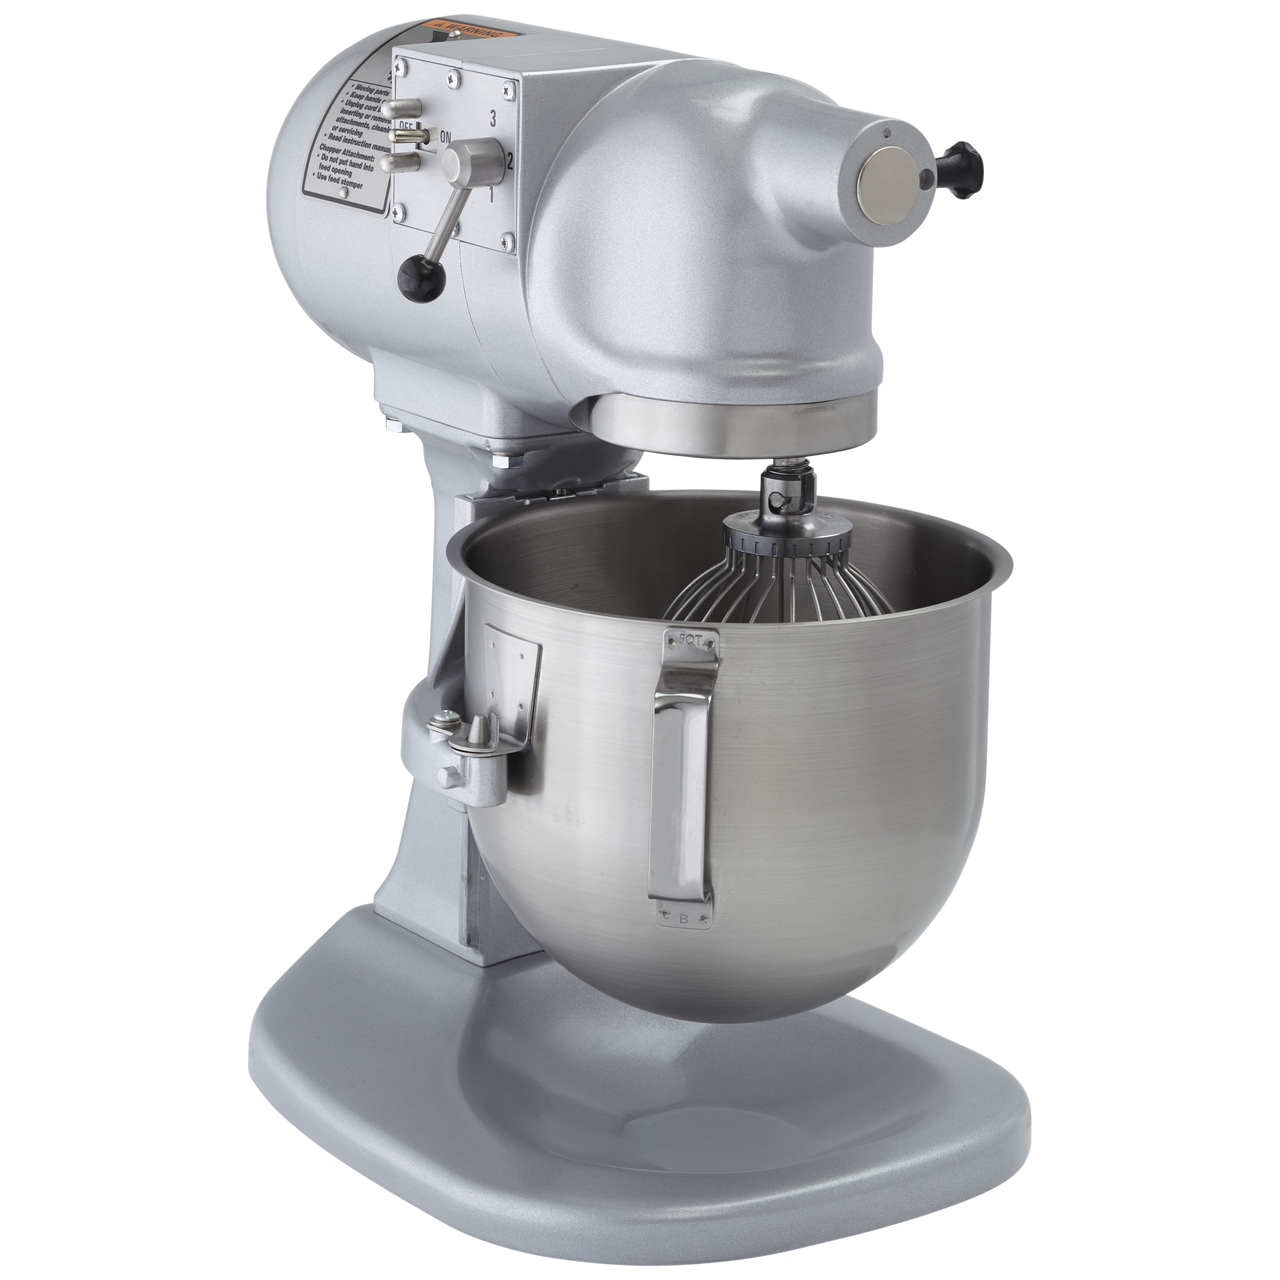 So I've Just Bought A Kitchen-aid Mixer... Gimmie Your